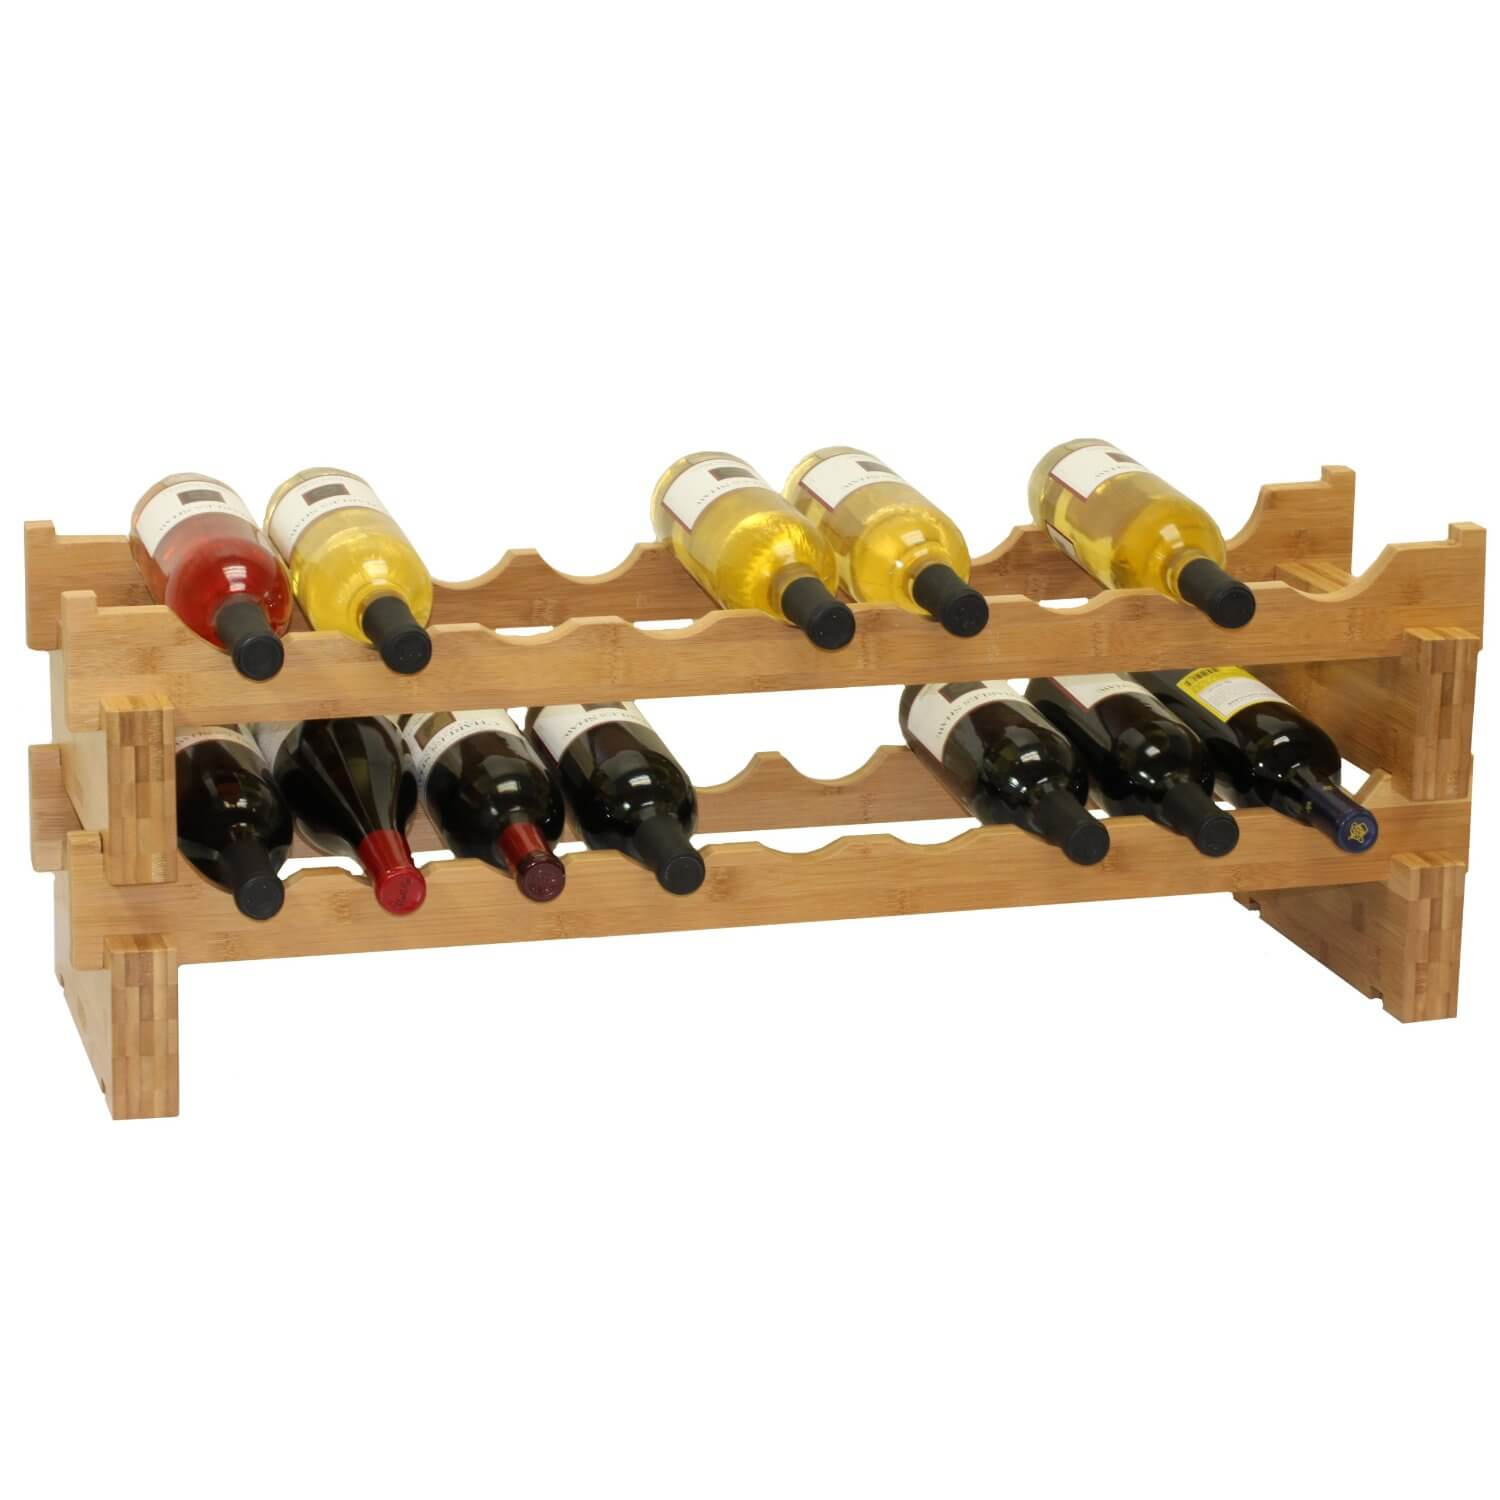 It also holds 18 bottles, but takes up much less room, and can even be placed on top of a wall cabinet if you don't need to get to your wine very often.